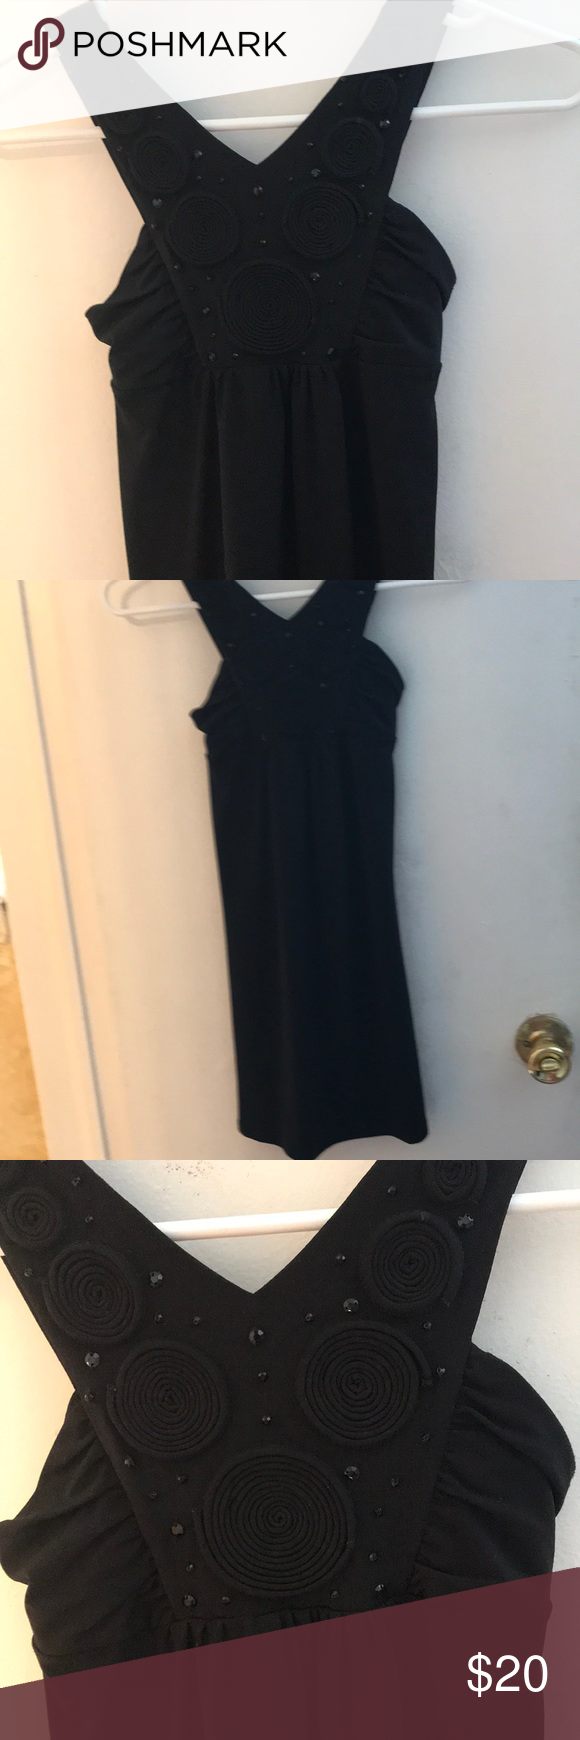 Girls Sally Miller Couture Dress Excellent condition no marks or signs of wear. From a smoke free home. Sally Miller Dresses Formal #sallymiller